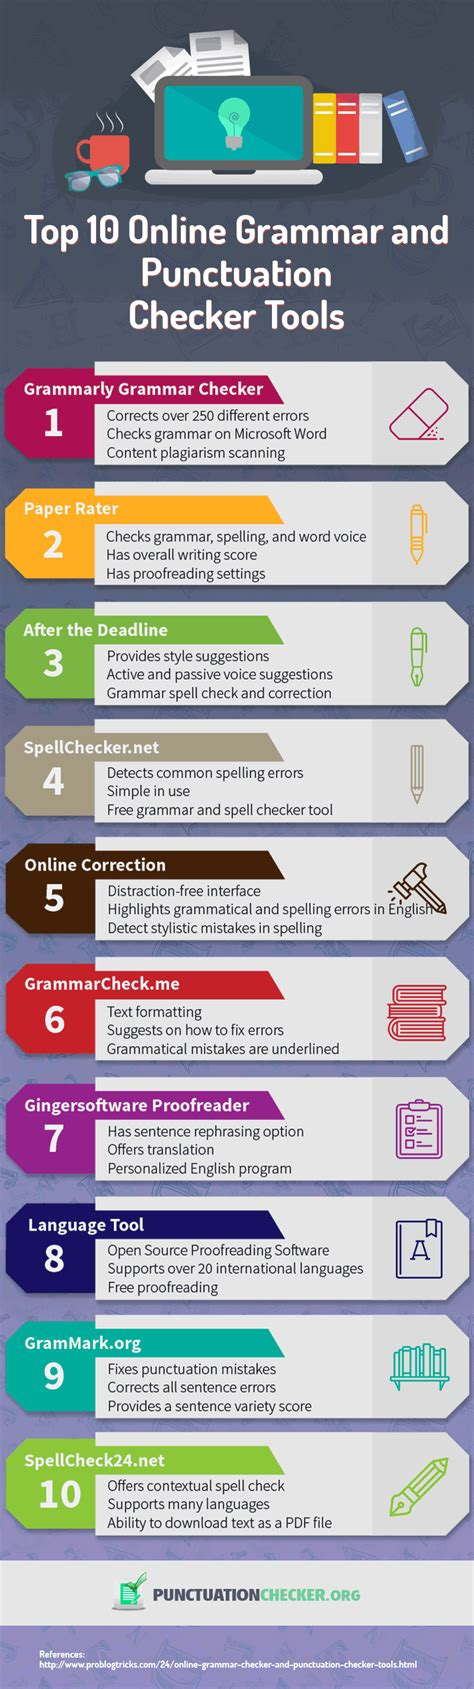 check tool 10 best grammar checkers tools punctuation checker